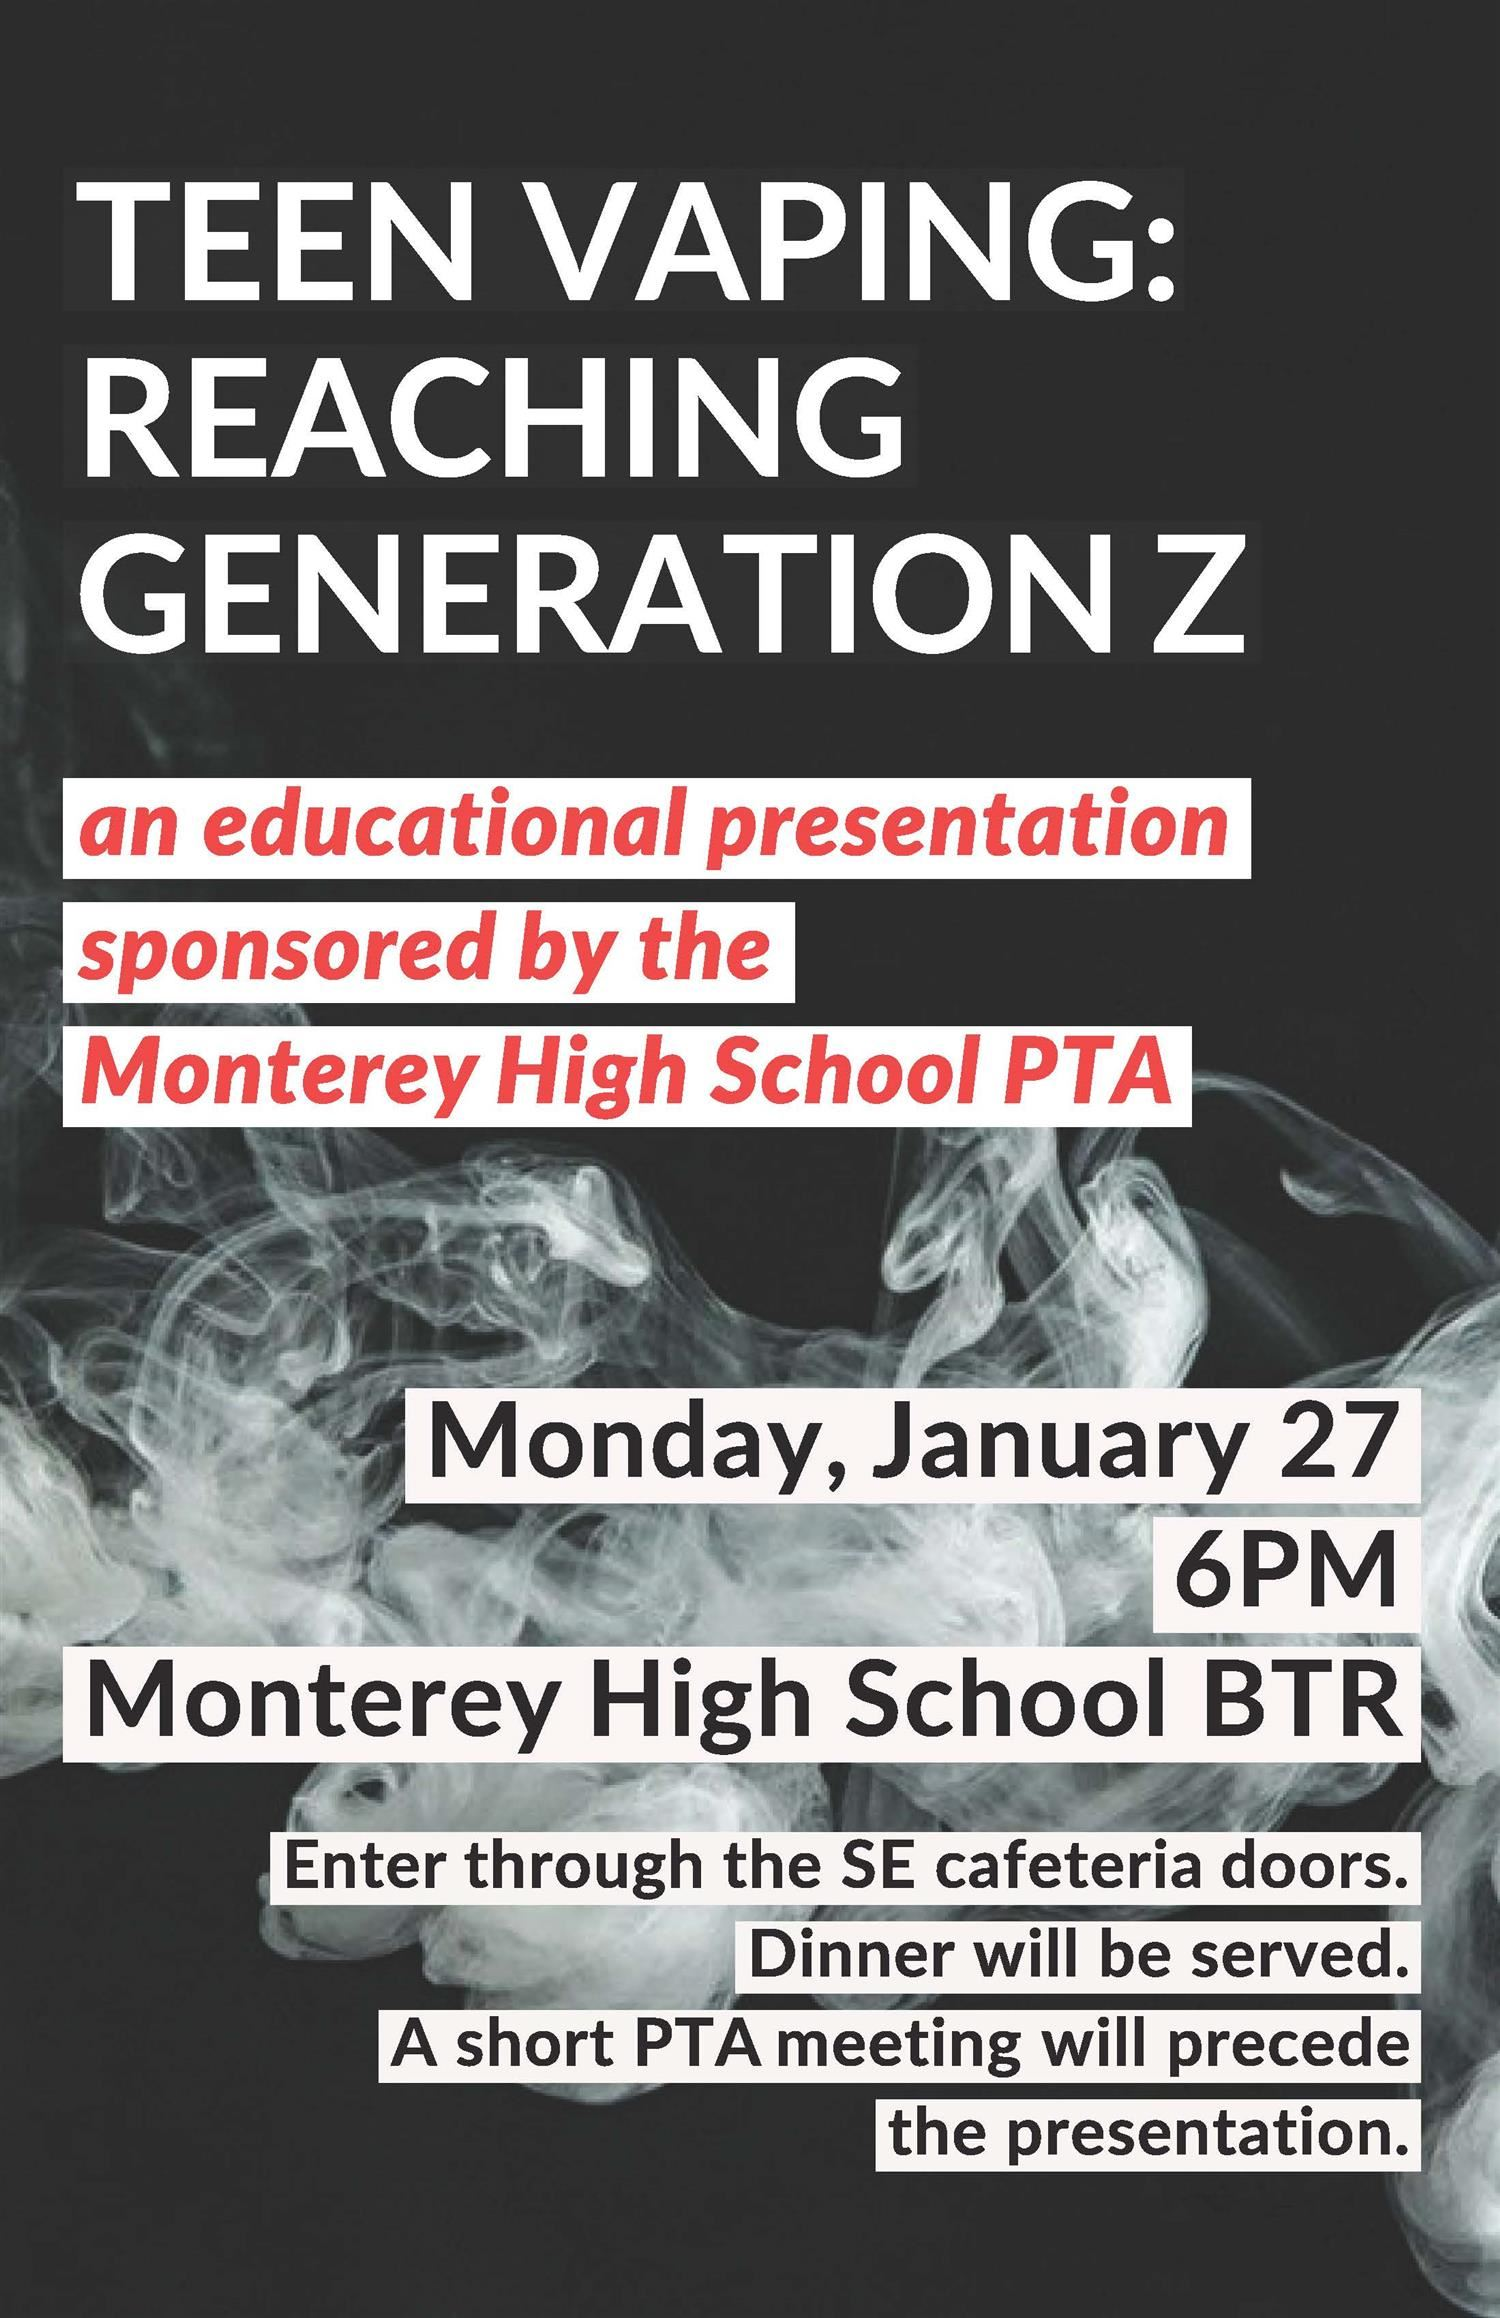 Teen Vaping Educational Presentation, January 27 at 6:00 in the BTR